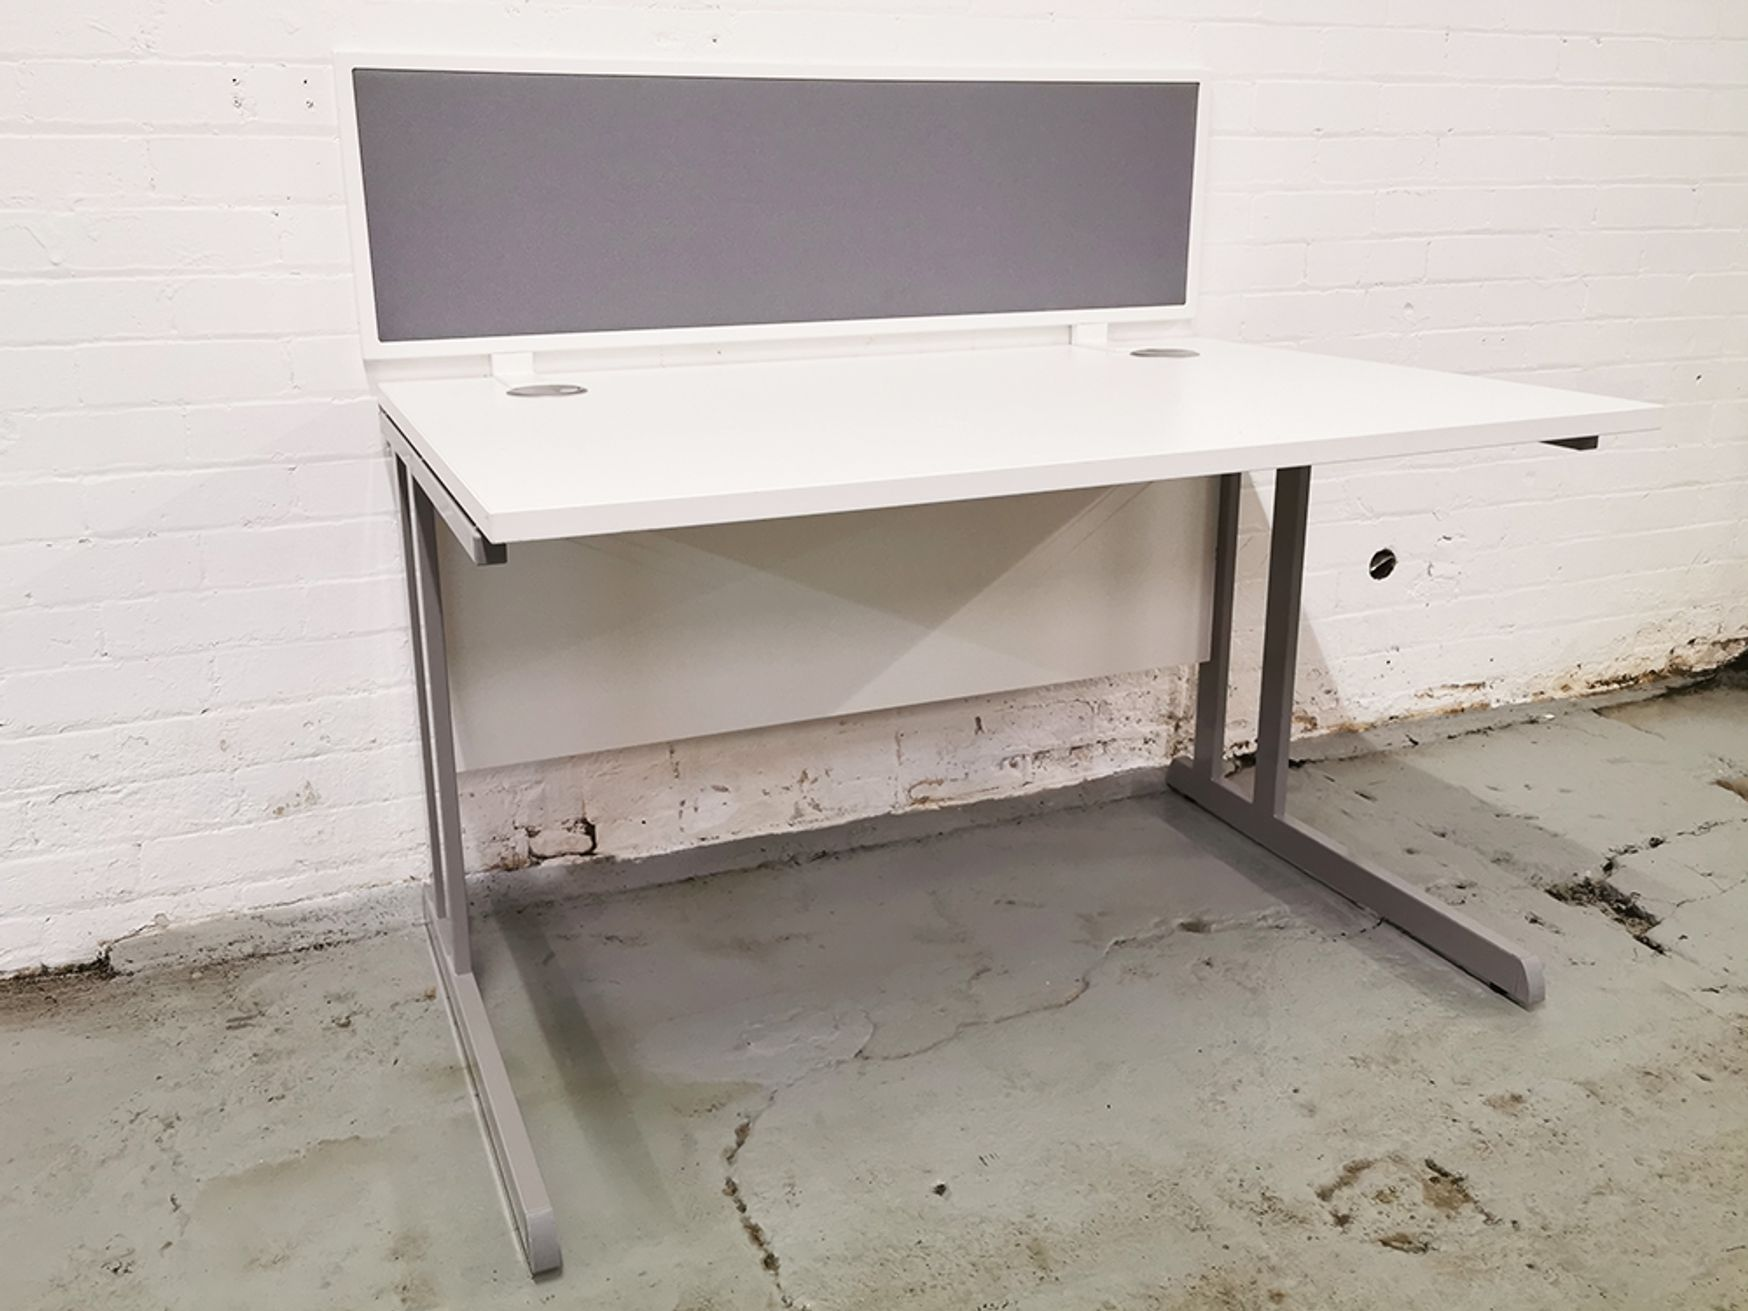 Used 1200mm Single White Desks - Screens sold separately